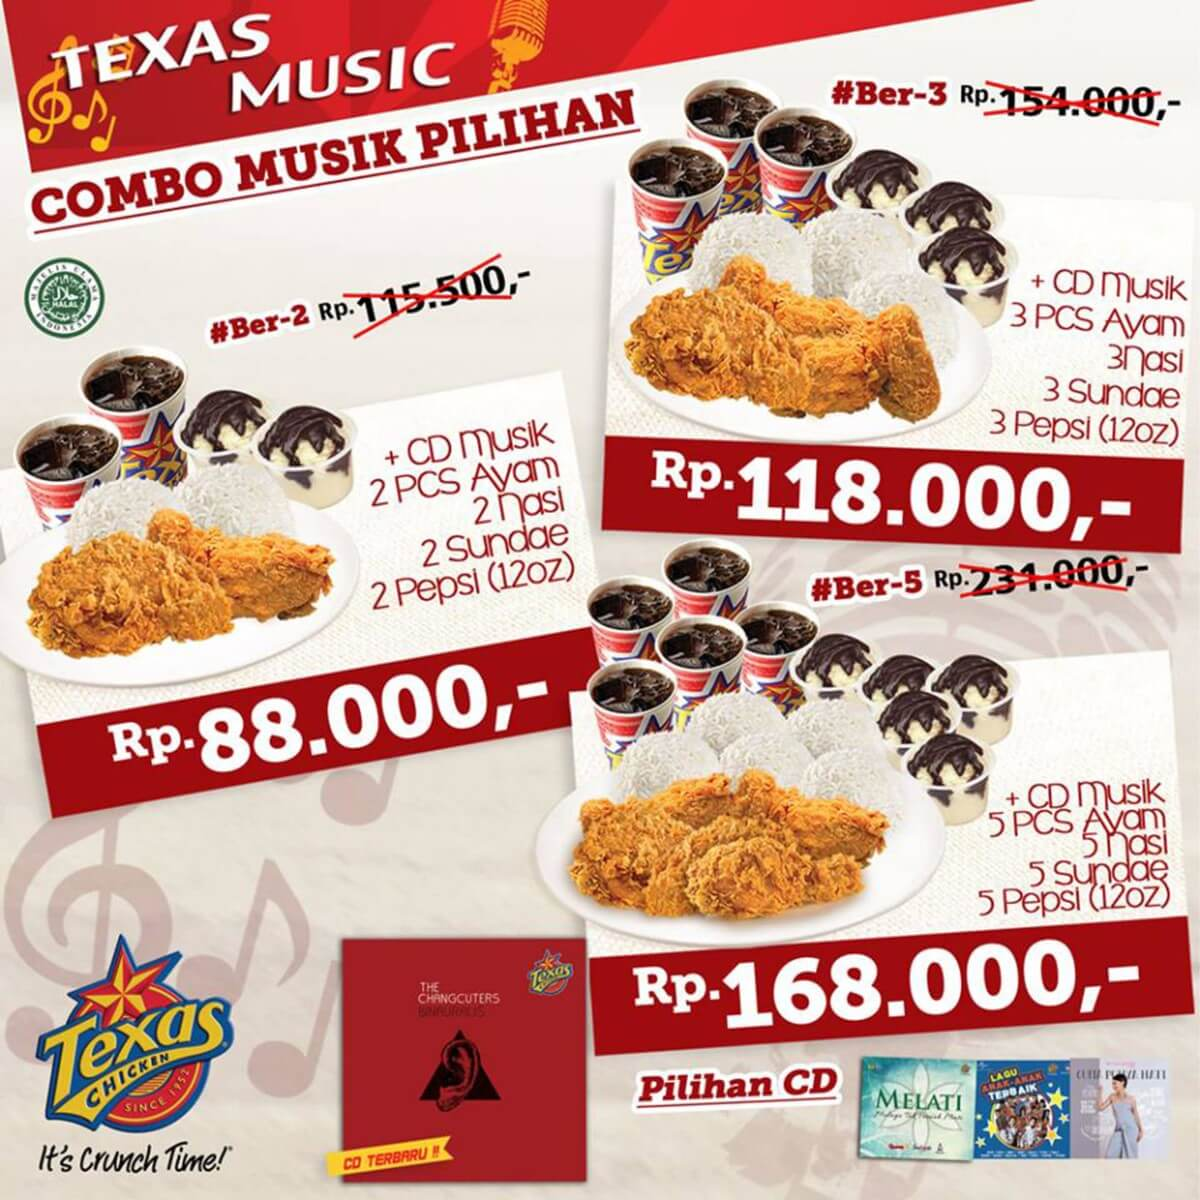 Texas chicken nz coupons